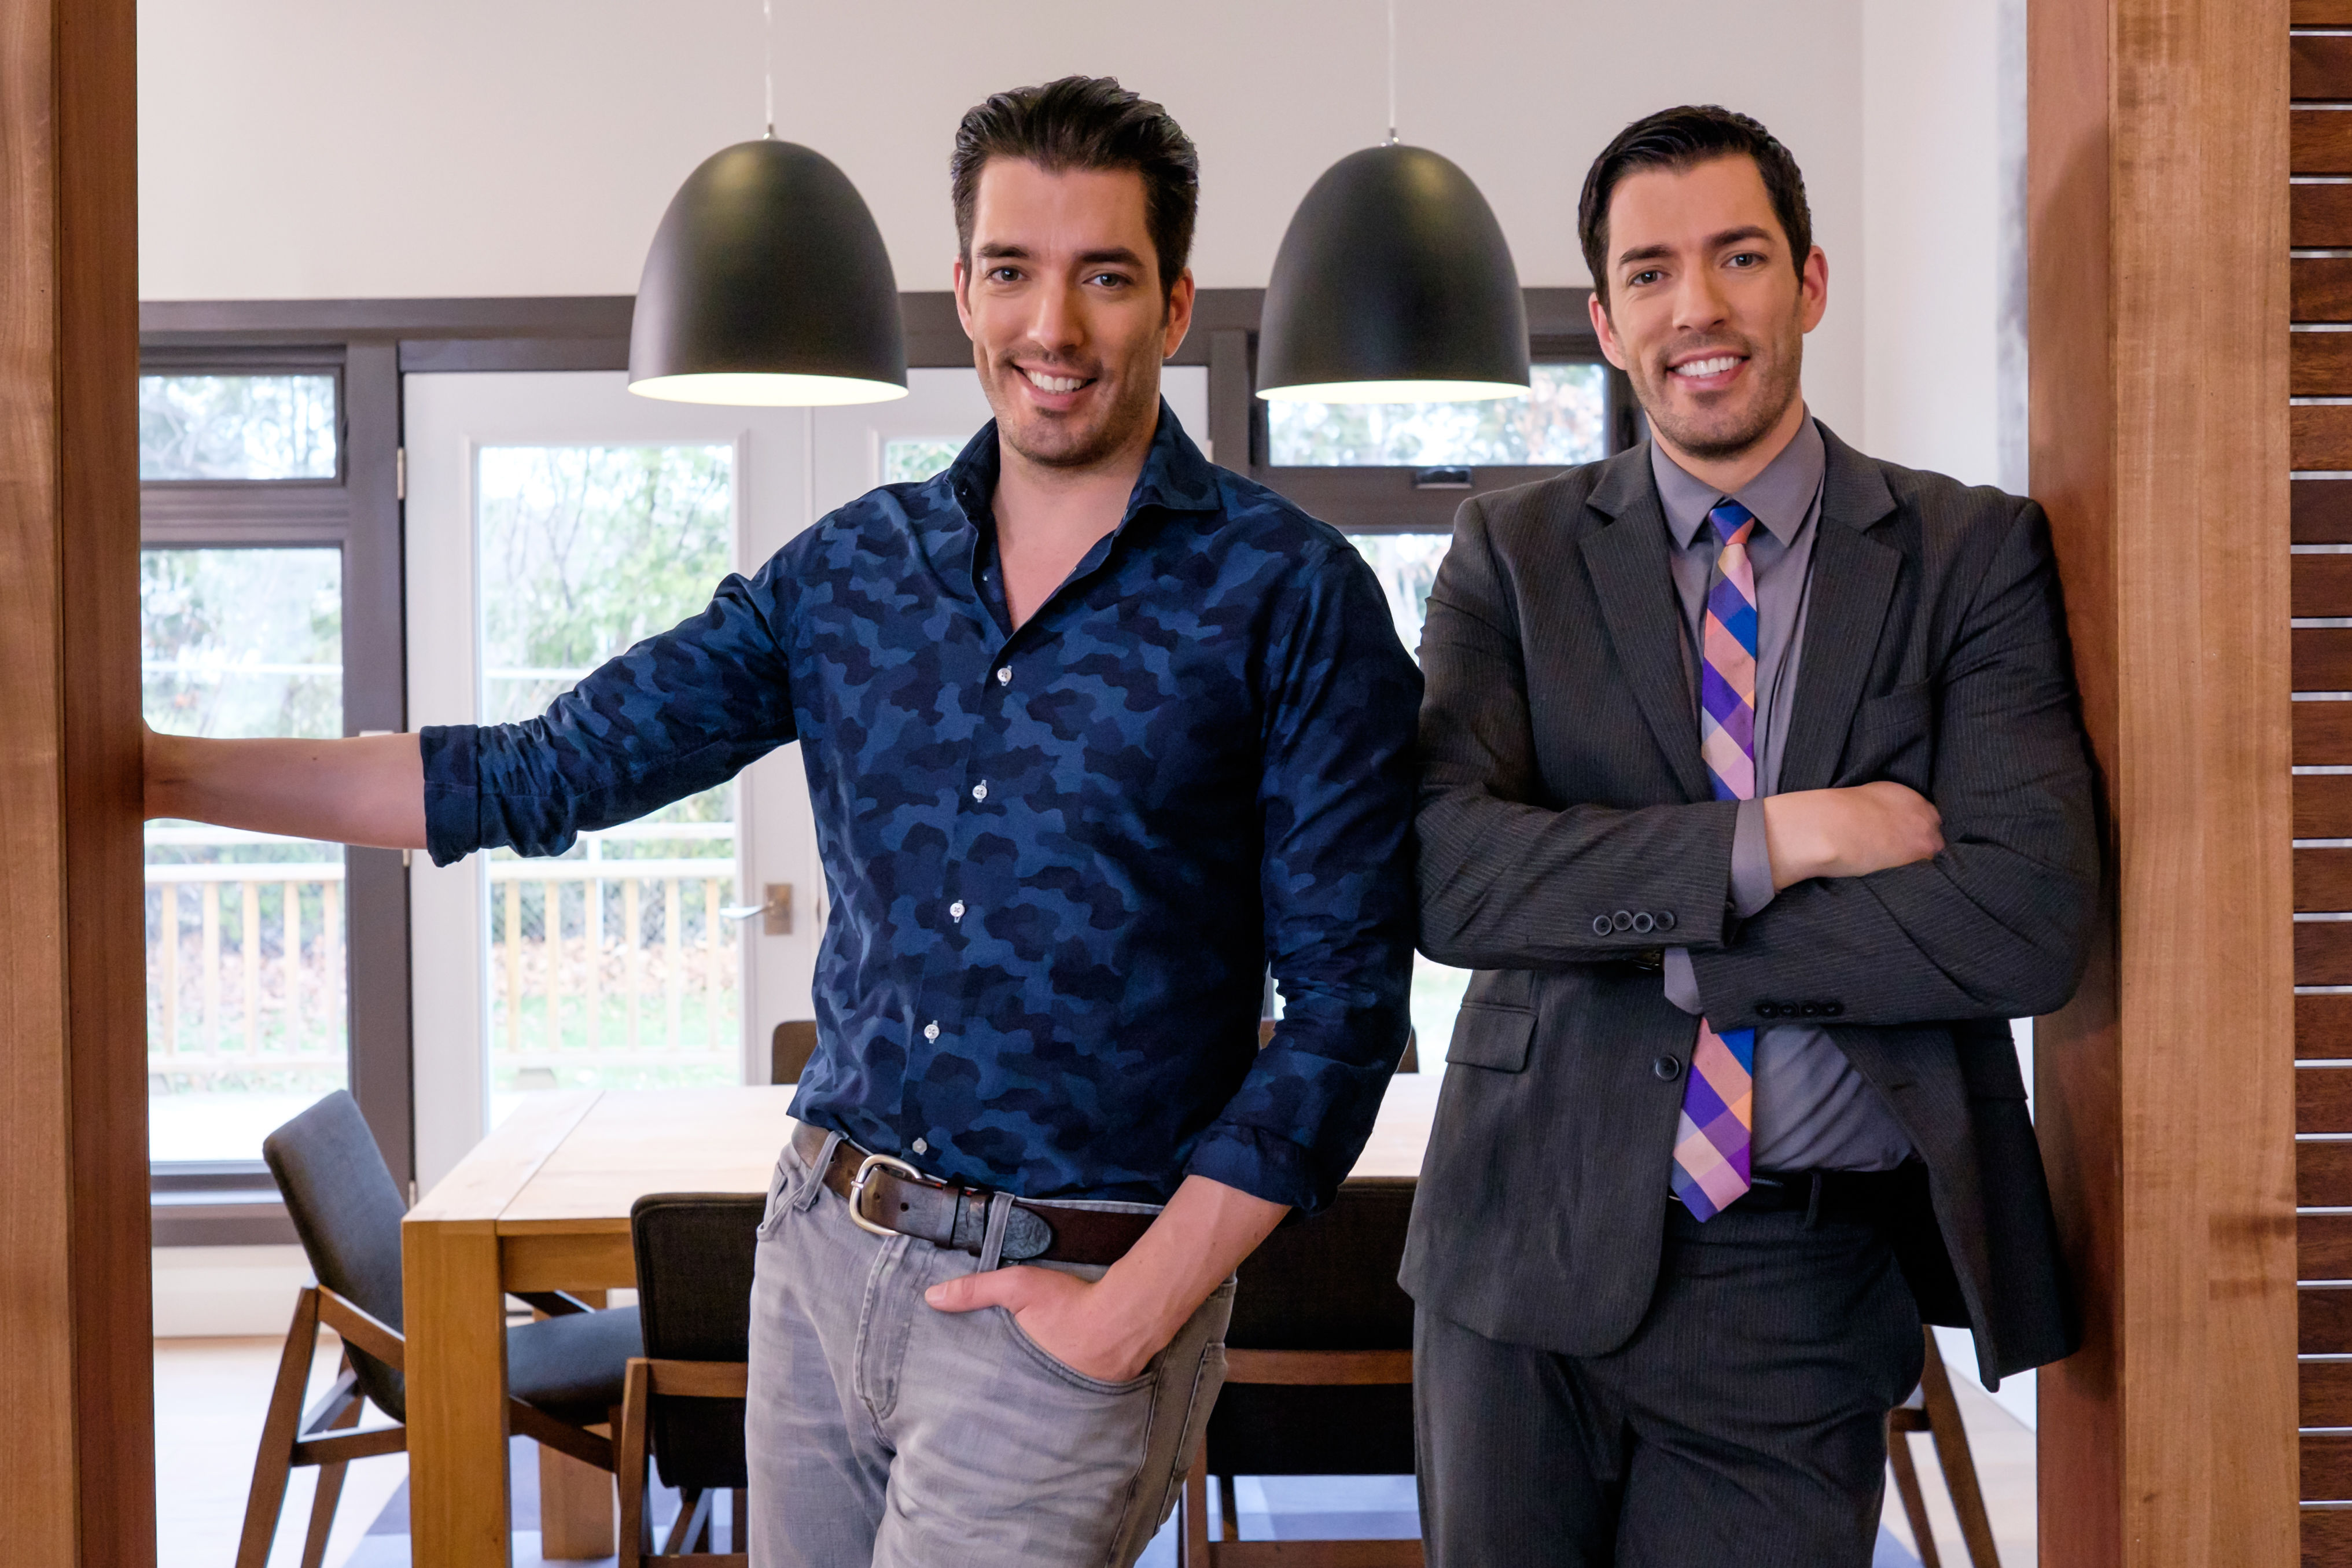 WATCH: The Property Brothers Are Not Big Fans of This Popular Home Trend